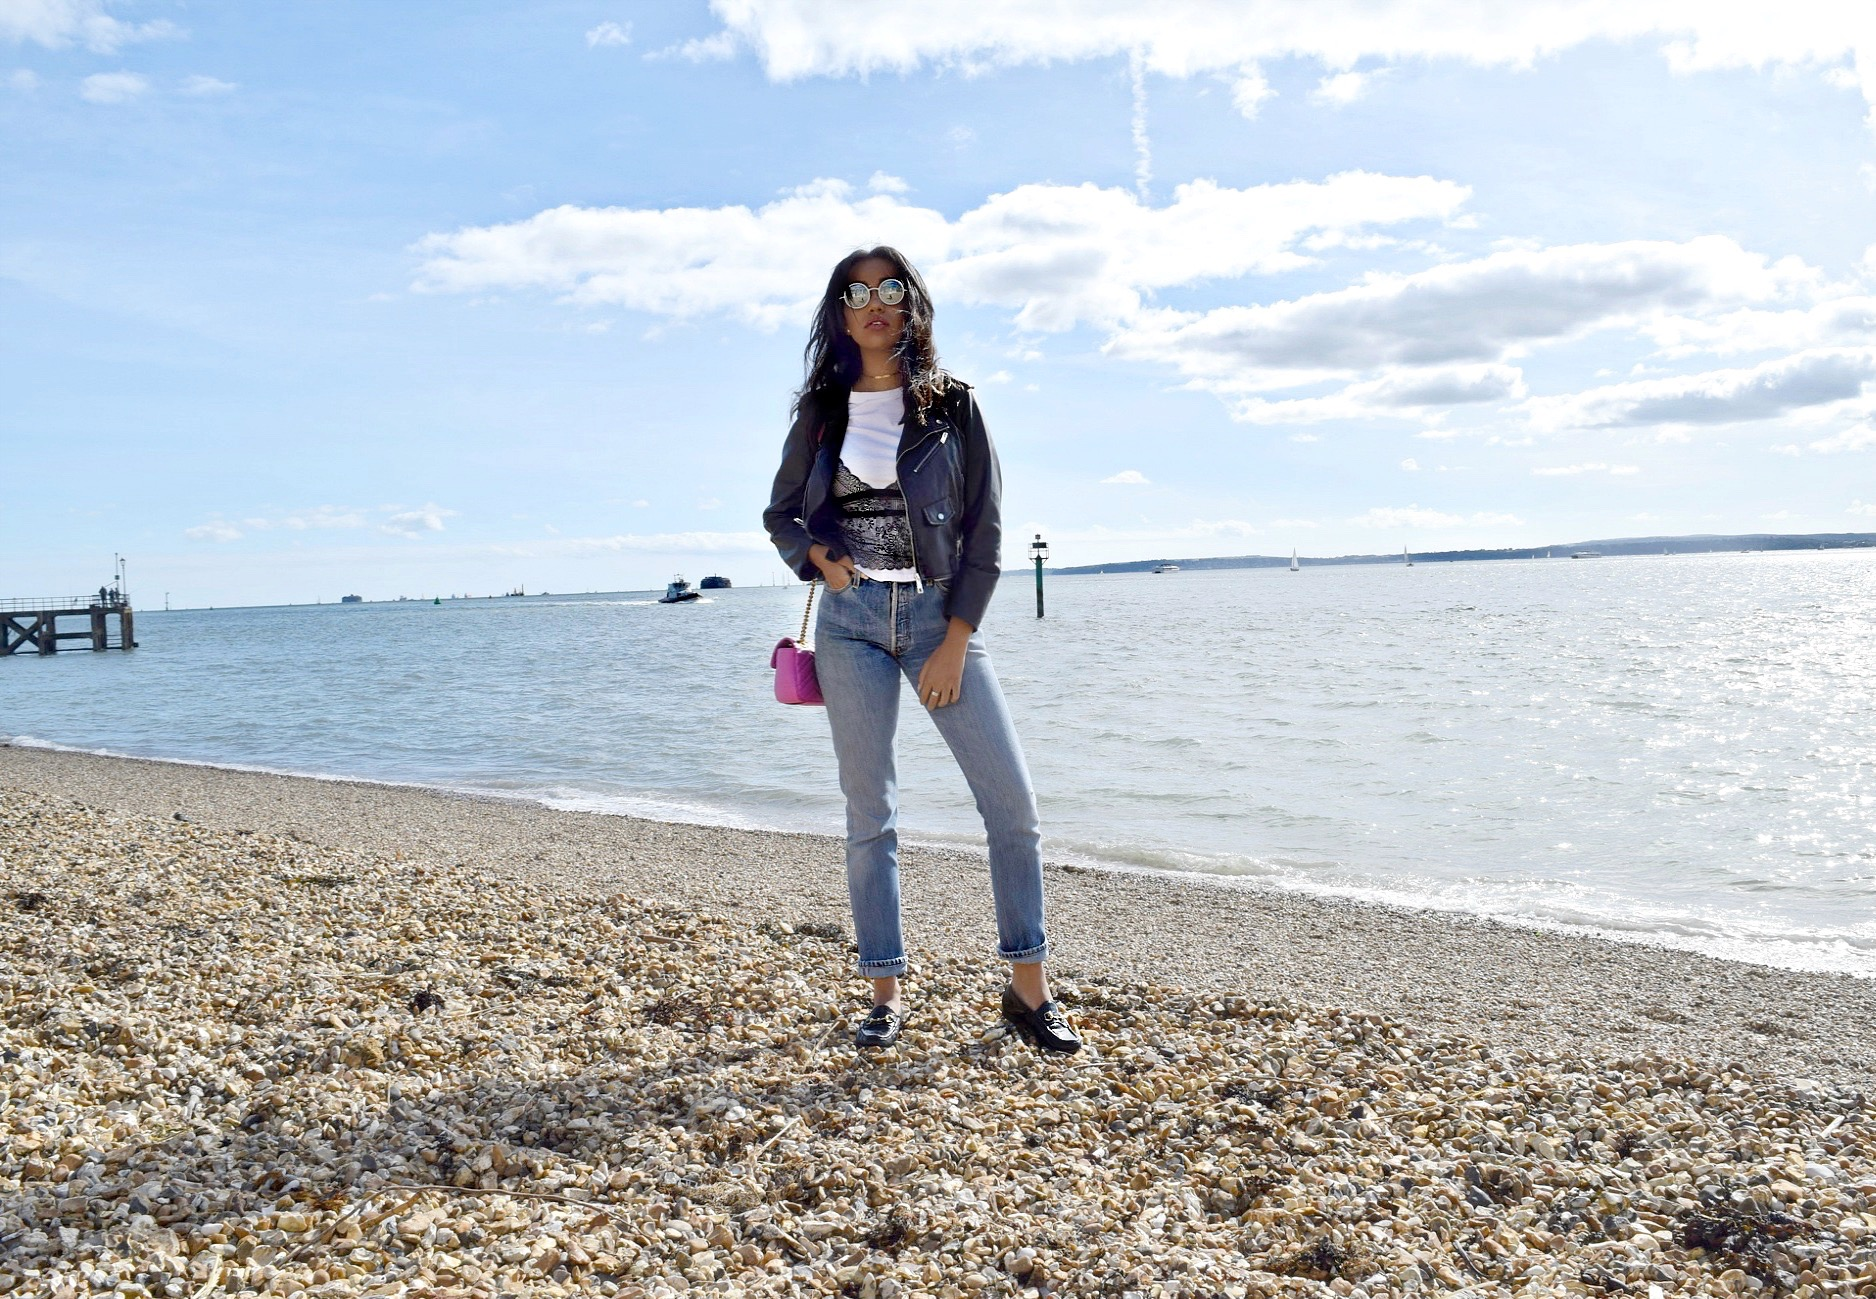 Old Portsmouth // London, England Travel Diary // Re Done Ass Rip Jeans // Lace Layered Tshirt // Gucci Patent Leather Loafers // Gucci GG Pink Marmont Bag // Chanel Pearl Sunglasses // Zara Leather Jacket // Los Angeles Fashion Blogger Daphne Blunt: To Style, With Love